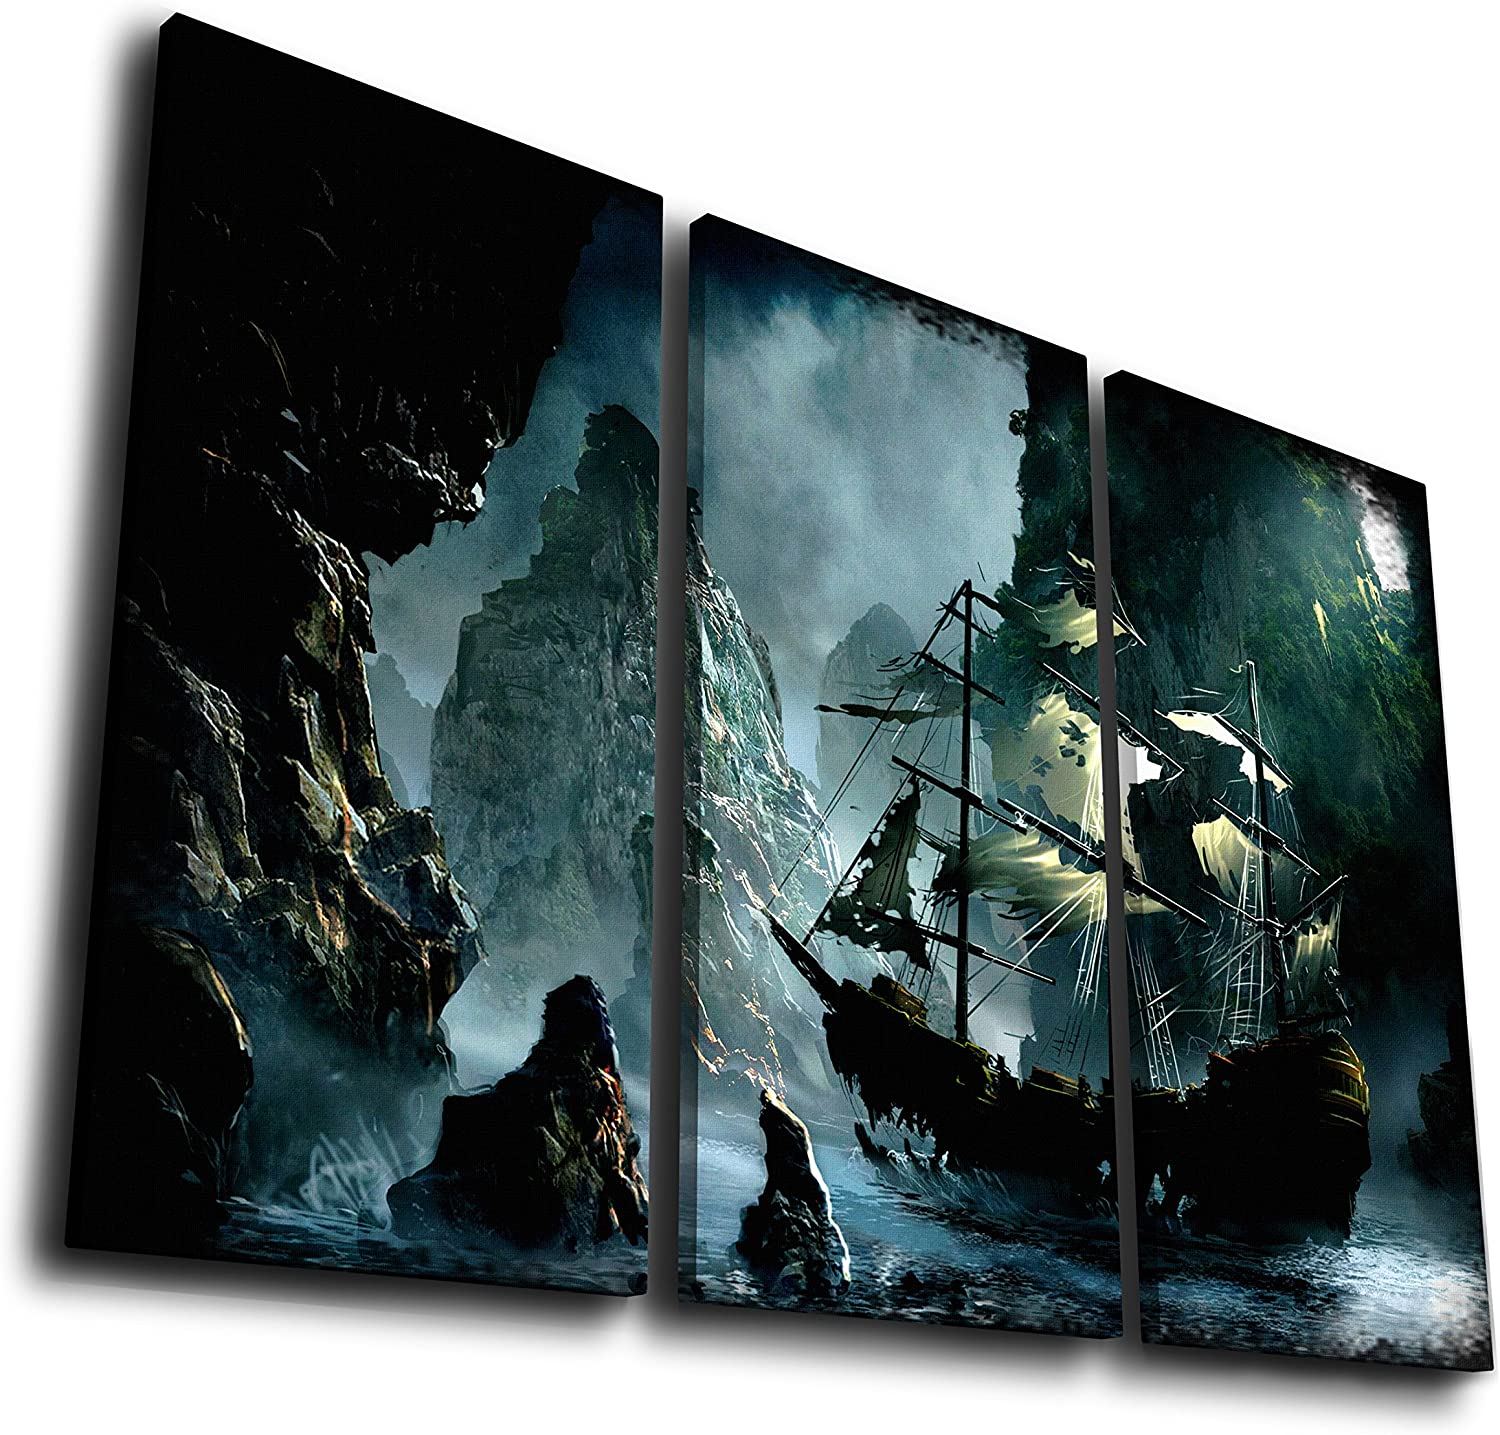 HQ Art 3 Pcs Ghost Ship Old Pirate Ship Sea Landscape Canvas Prints Paintings Canvas Wall Art Modern Stretched Pictures Artwork Office Home Décor Halloween Gifts (SIZE 3: 16x32inchx3pcs, With Framed)